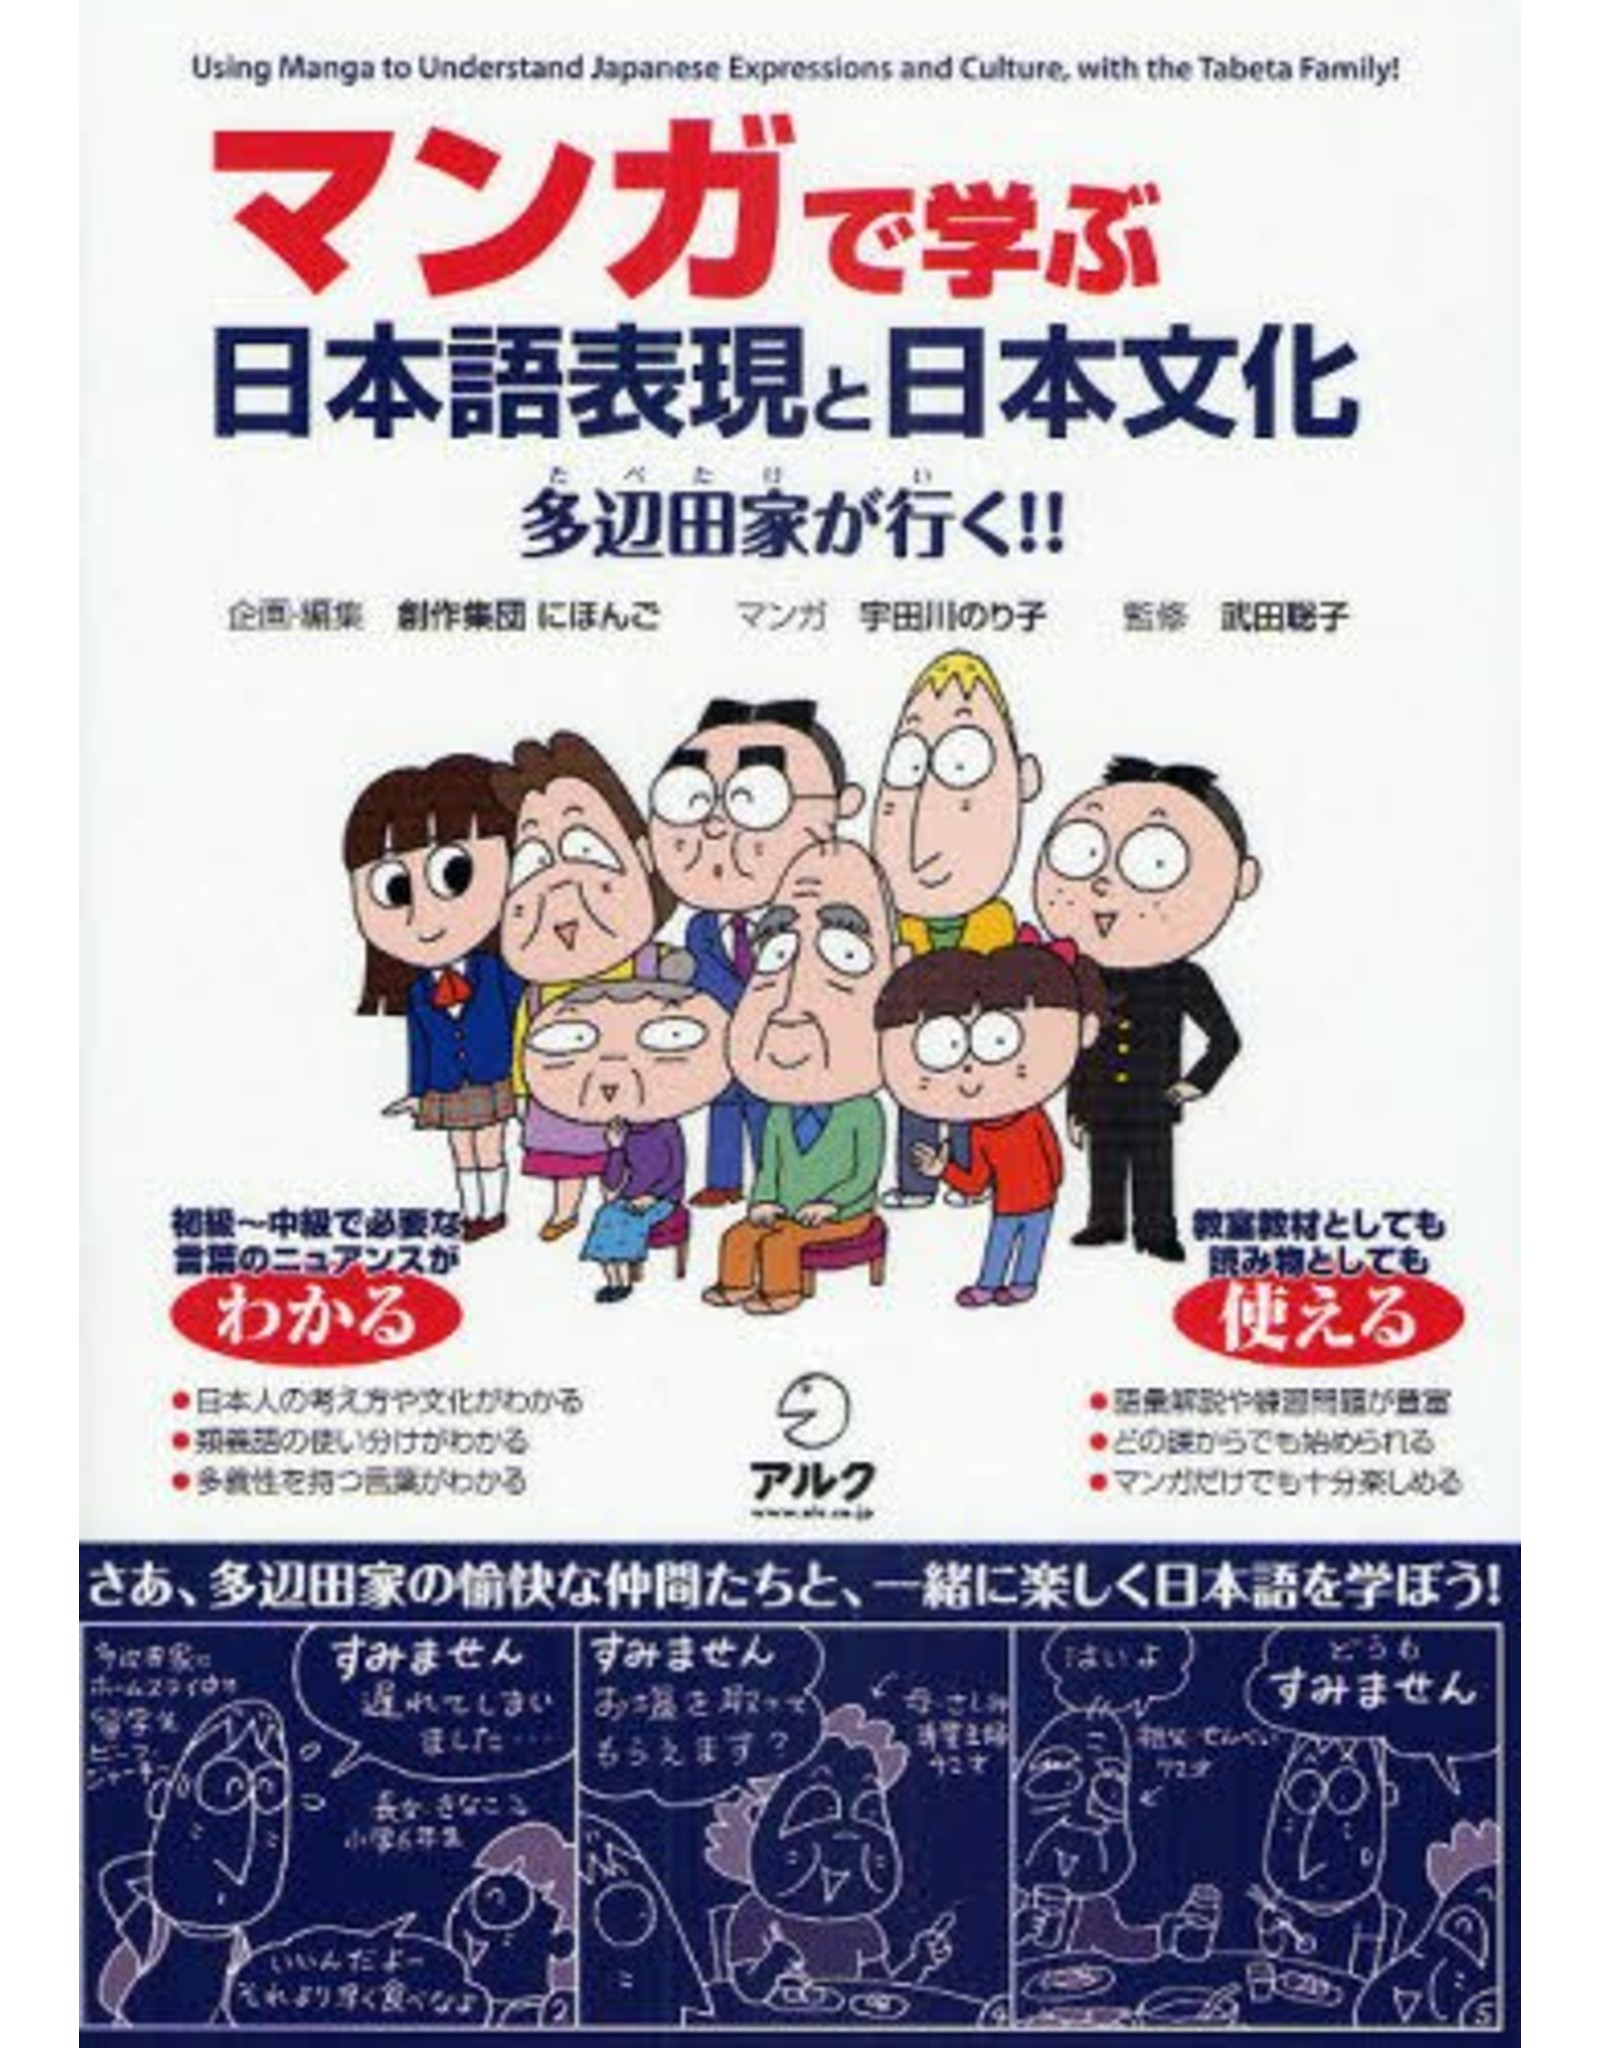 ALC USING MANGA TO UNDERSTAND JAPANESE EXPRESSIONS AND CULTURES